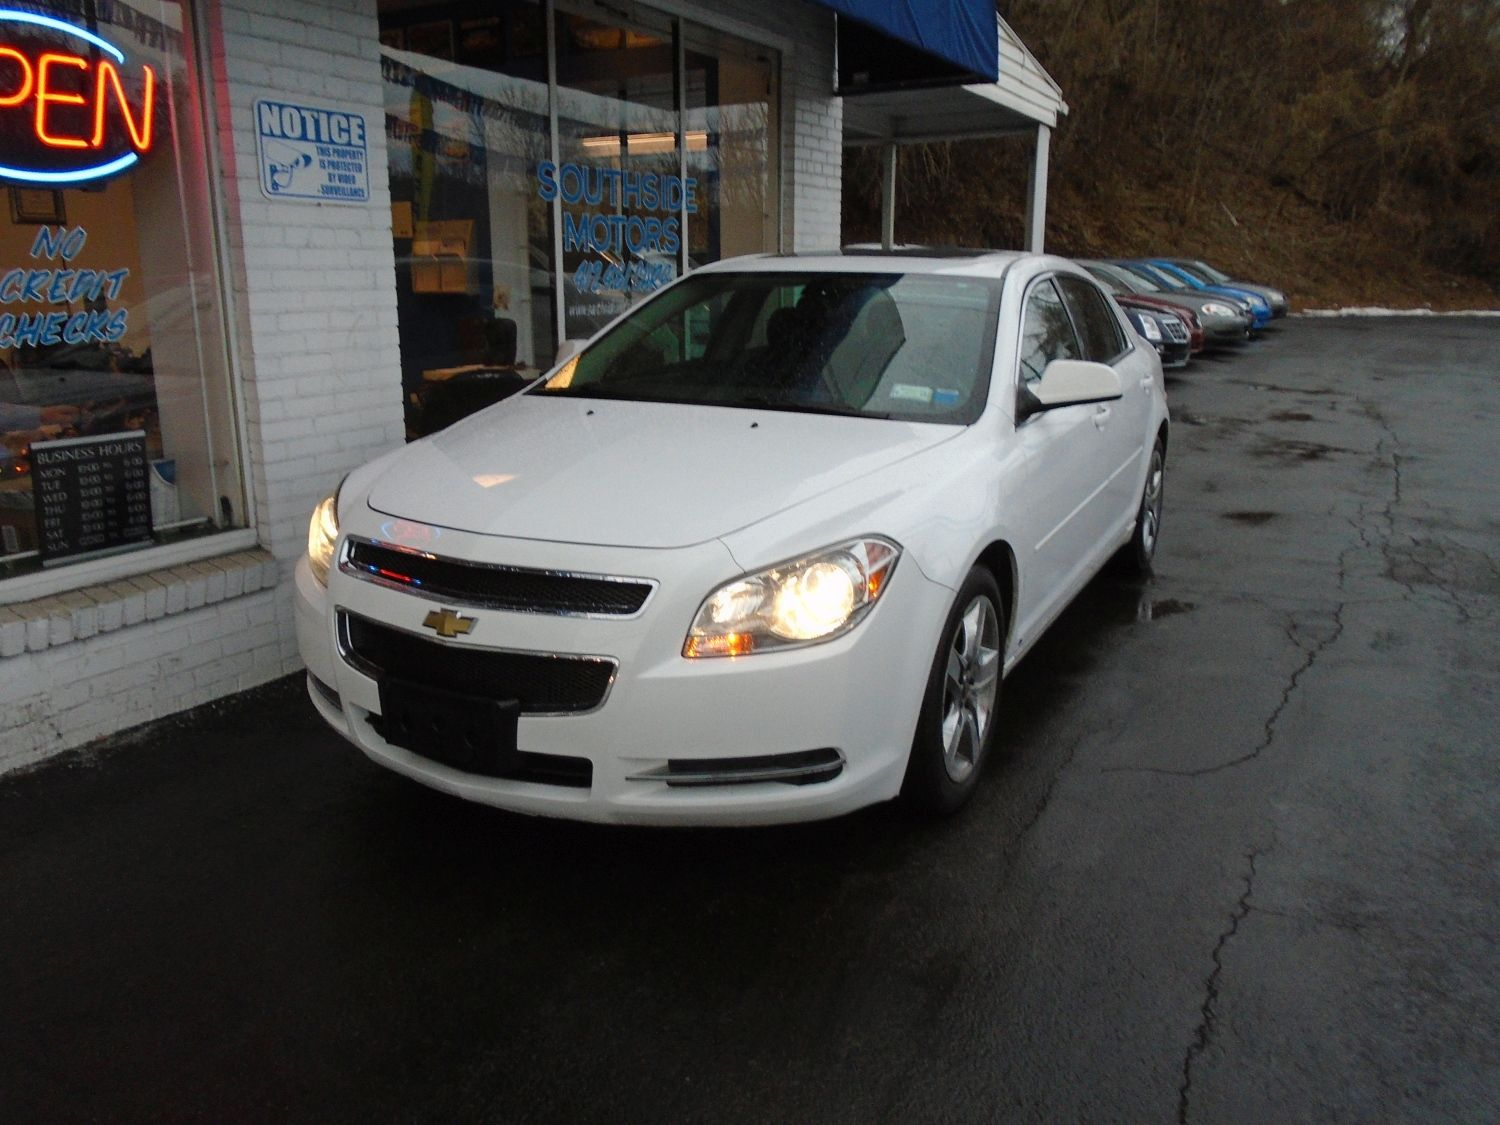 2009 Chevrolet Malibu Lt Xm Satellite And A Sunroof Malibu Lt